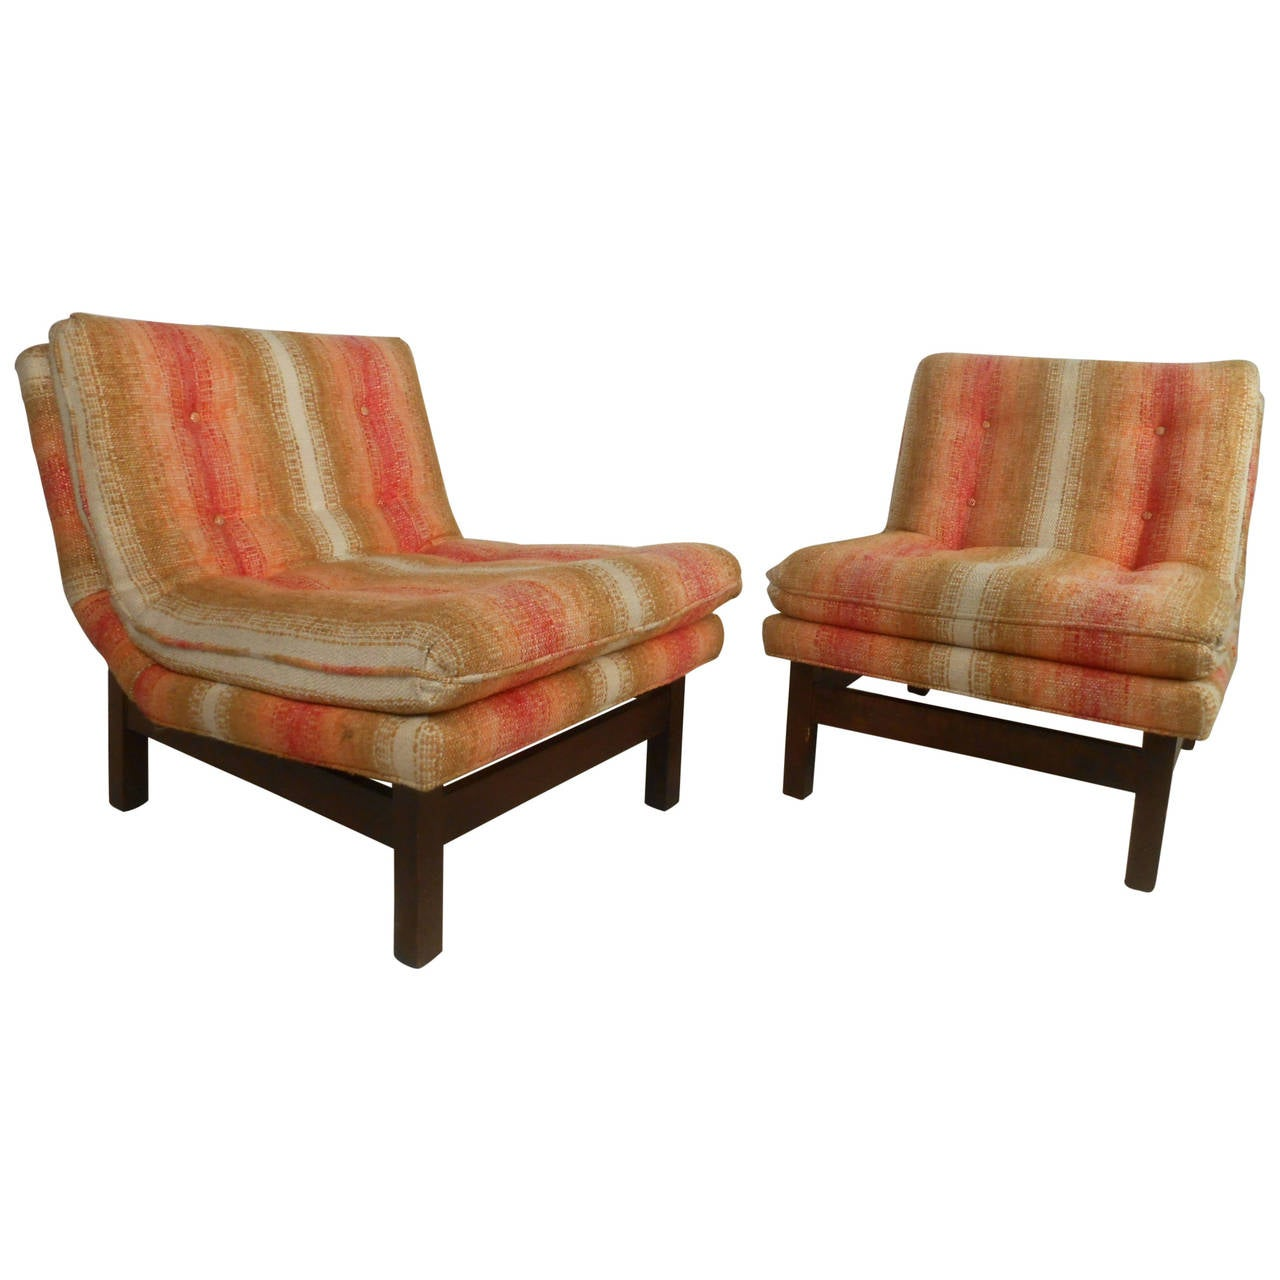 Pair of Midcentury Edward Wormley, Dunbar Style Slipper Chairs